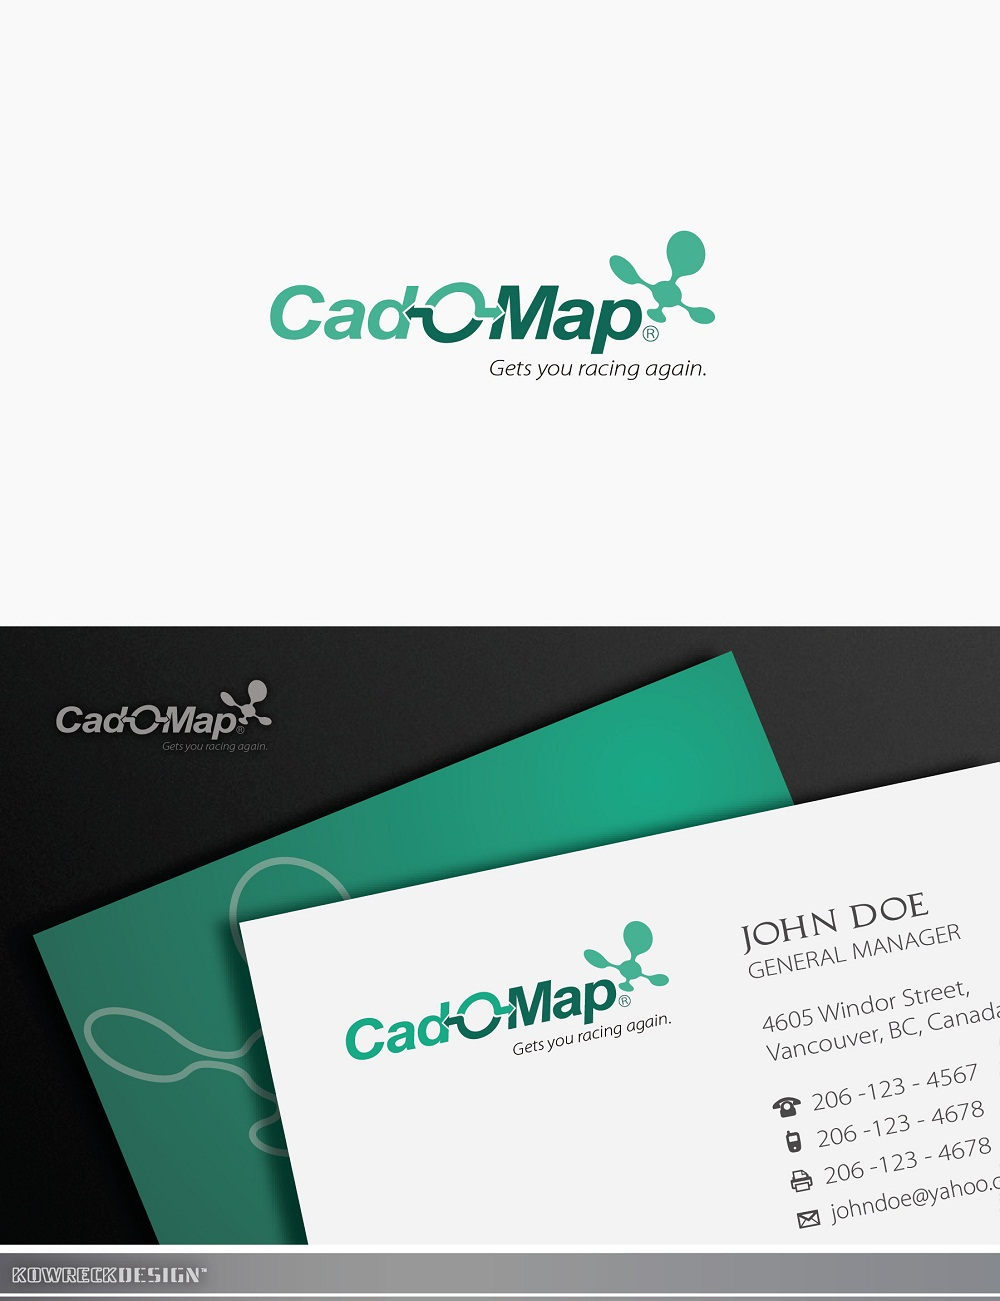 Logo Design by kowreck - Entry No. 158 in the Logo Design Contest Captivating Logo Design for CadOMap software product.